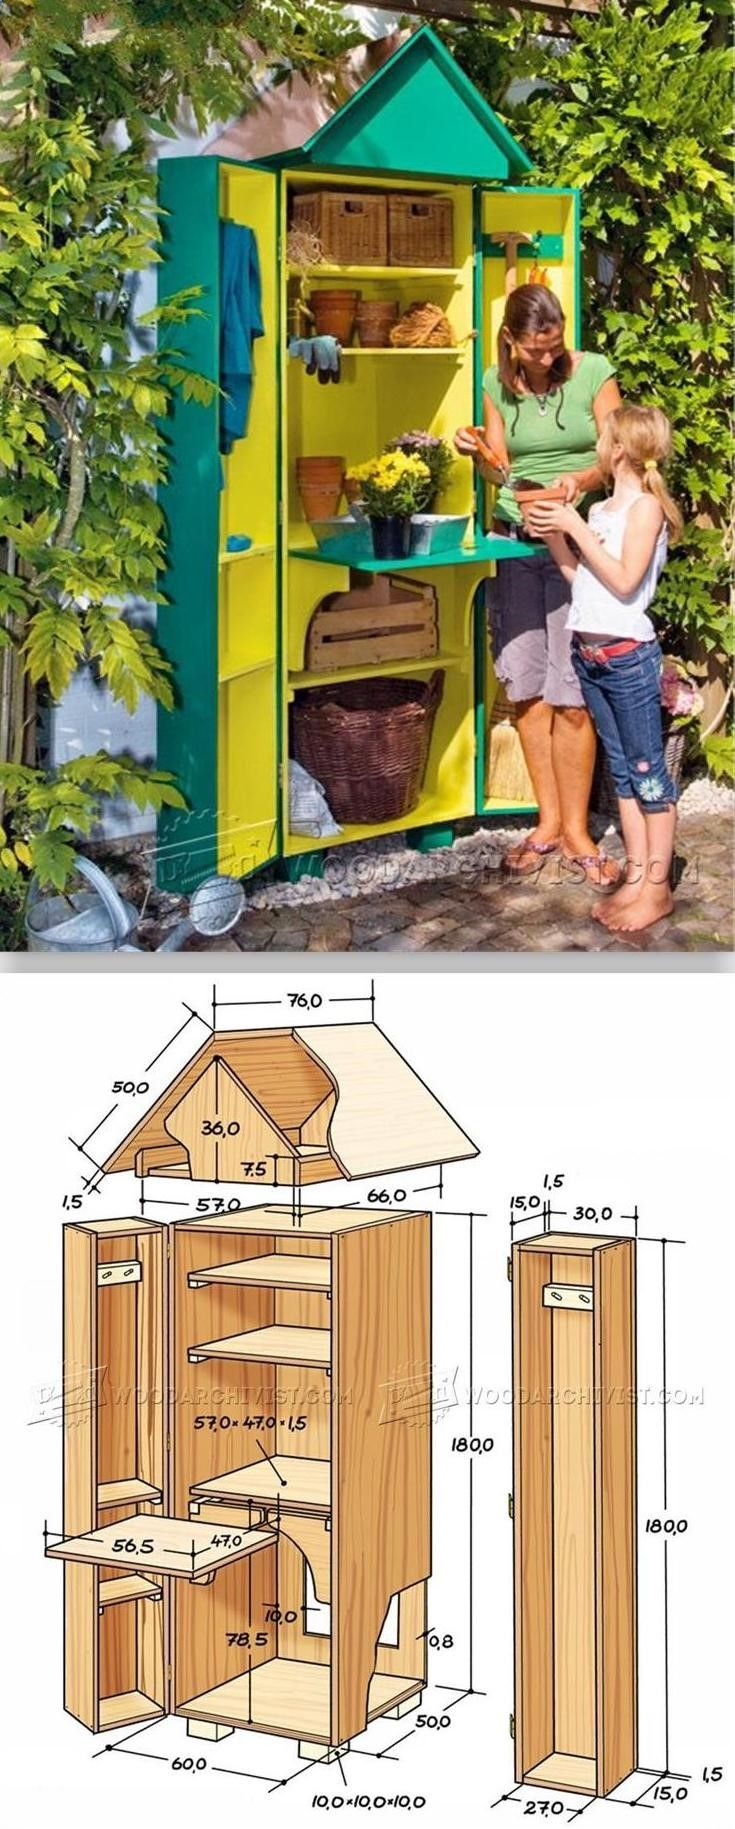 Shed Plans - Shed Plans - Garden Shed Plans - Outdoor Plans and Projects | WoodArchivist.com Now You Can Build ANY Shed In A Weekend Even If You've Zero Woodworking Experience! - Now You Can Build ANY Shed In A Weekend Even If You've Zero Woodworking Experience!